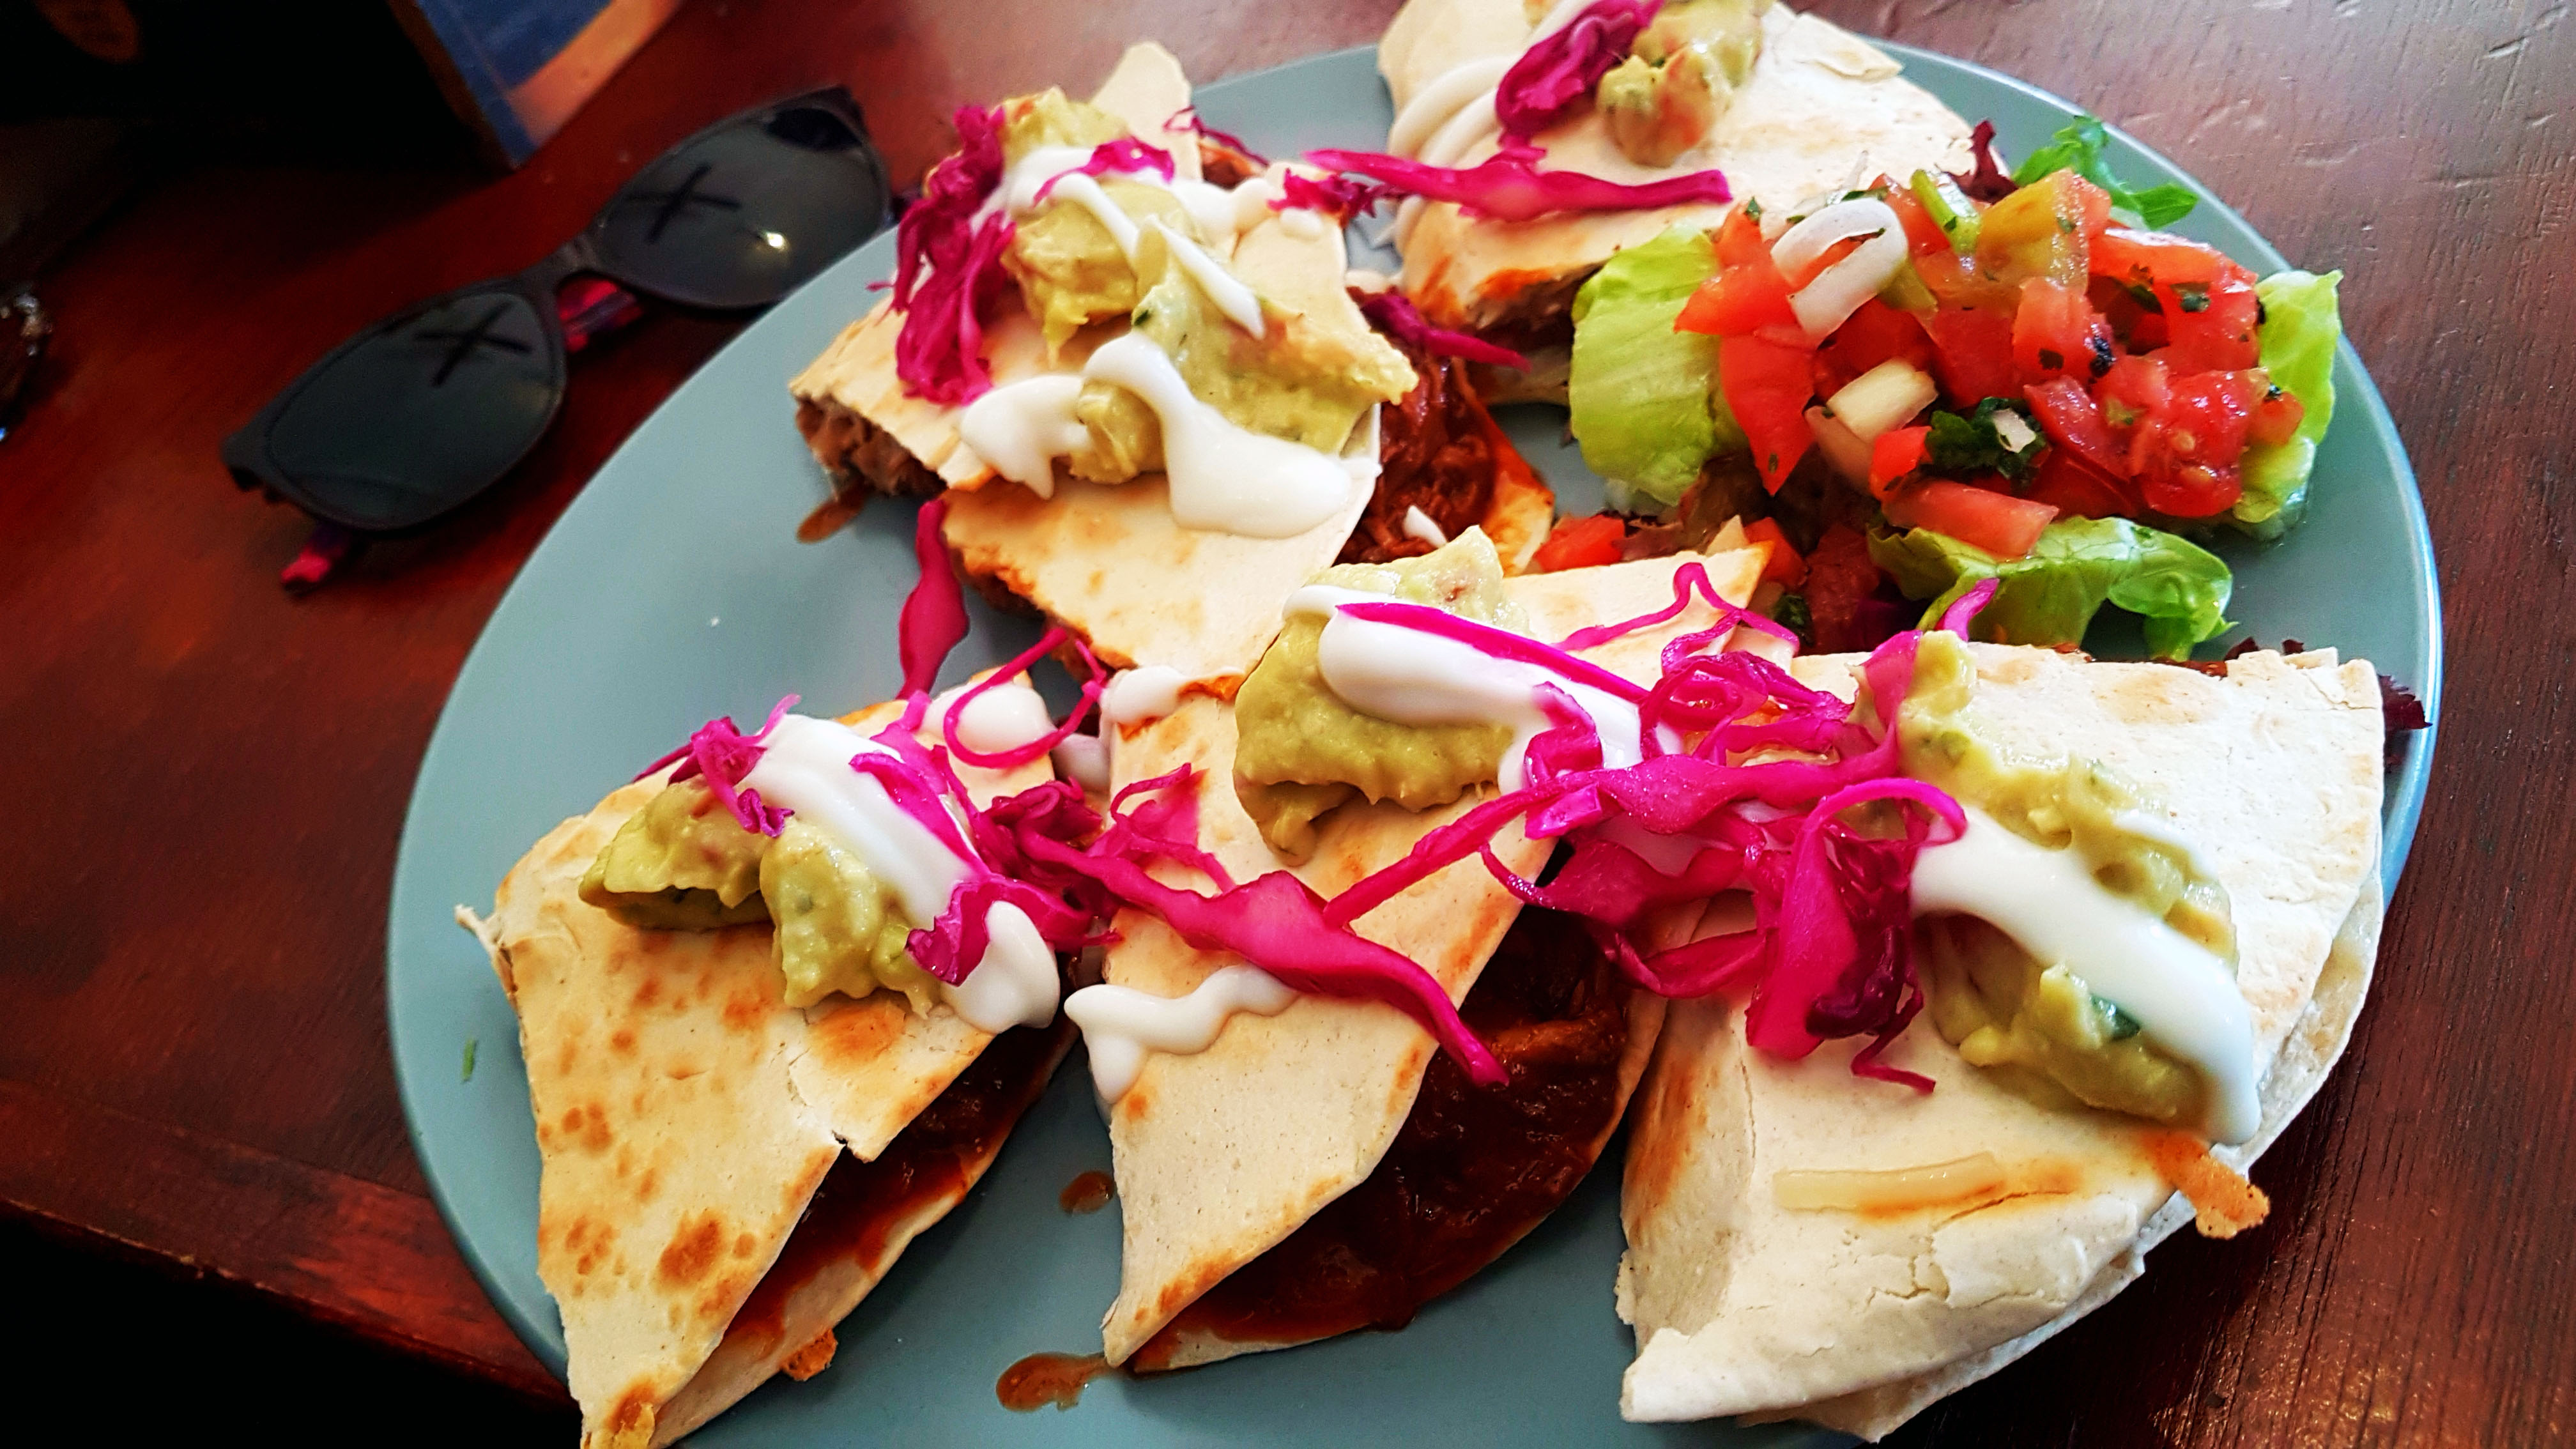 Deciding what to eat was tough. In the end I went for this, the Happy Hog quesadillas, with BBQ pulled pork, cheese and chilli pineapple salsa. Yum! Washed down with an espresso shake, of course.